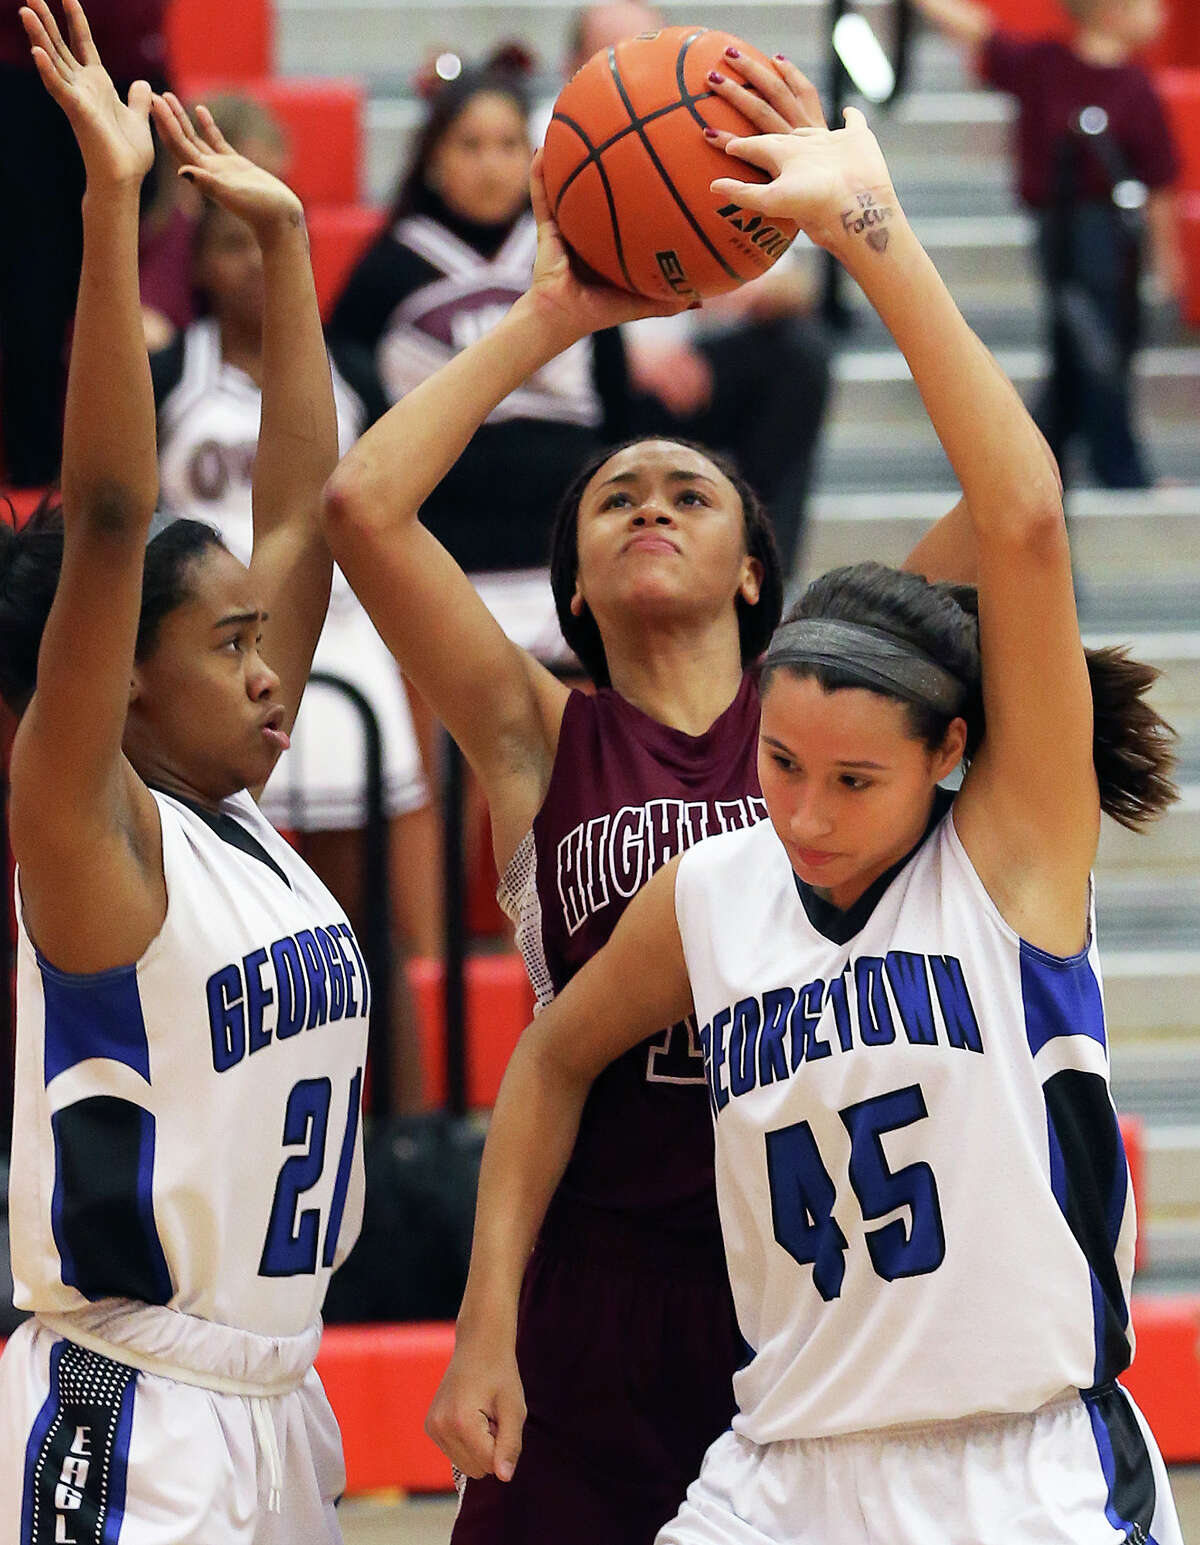 Owls forward Jazmine Jackson takes a shot over two George- town players in a 5A second- round playoff game Feb. 19.